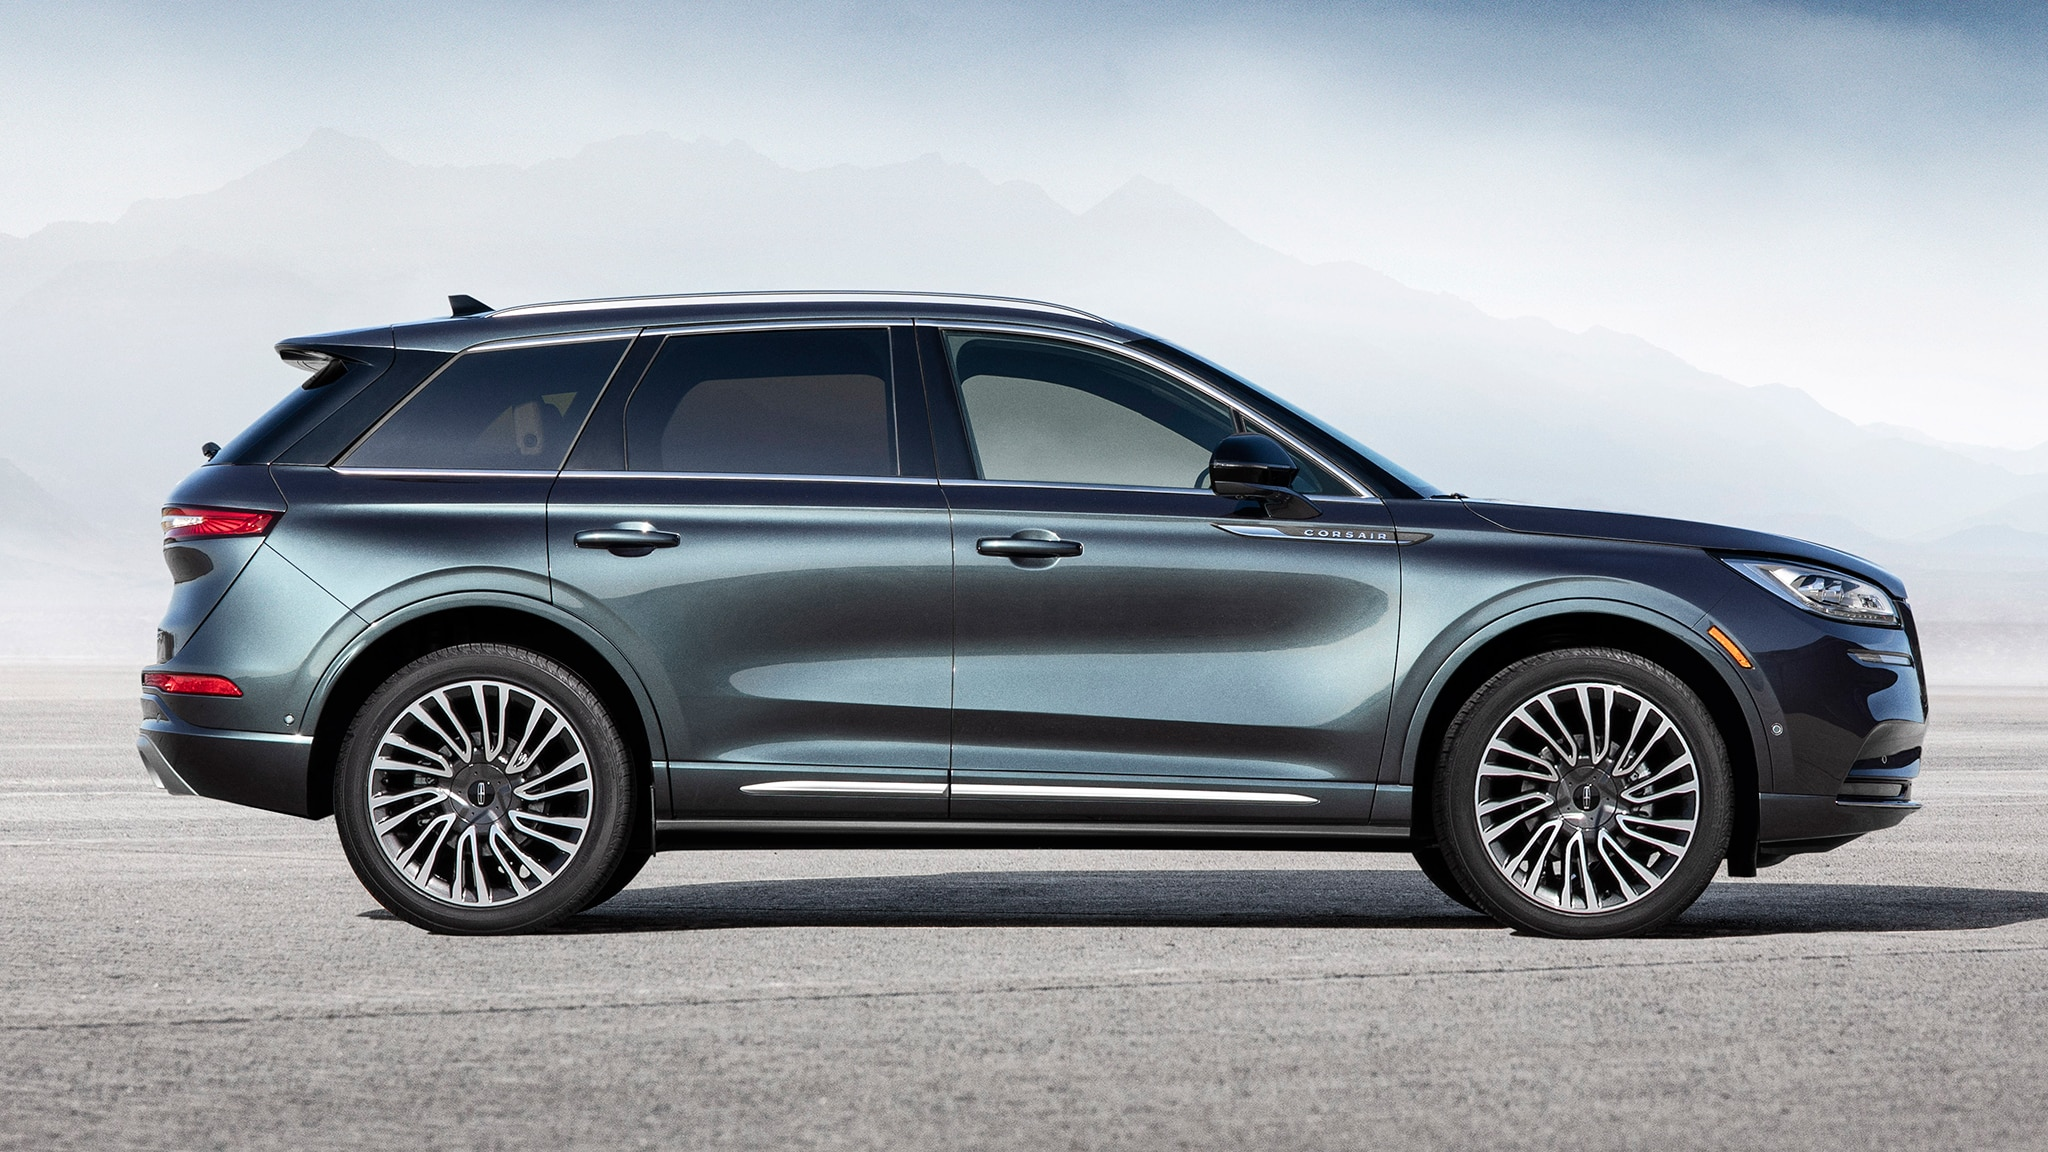 The 2020 Lincoln Corsair Arrives Looking Classy and ...